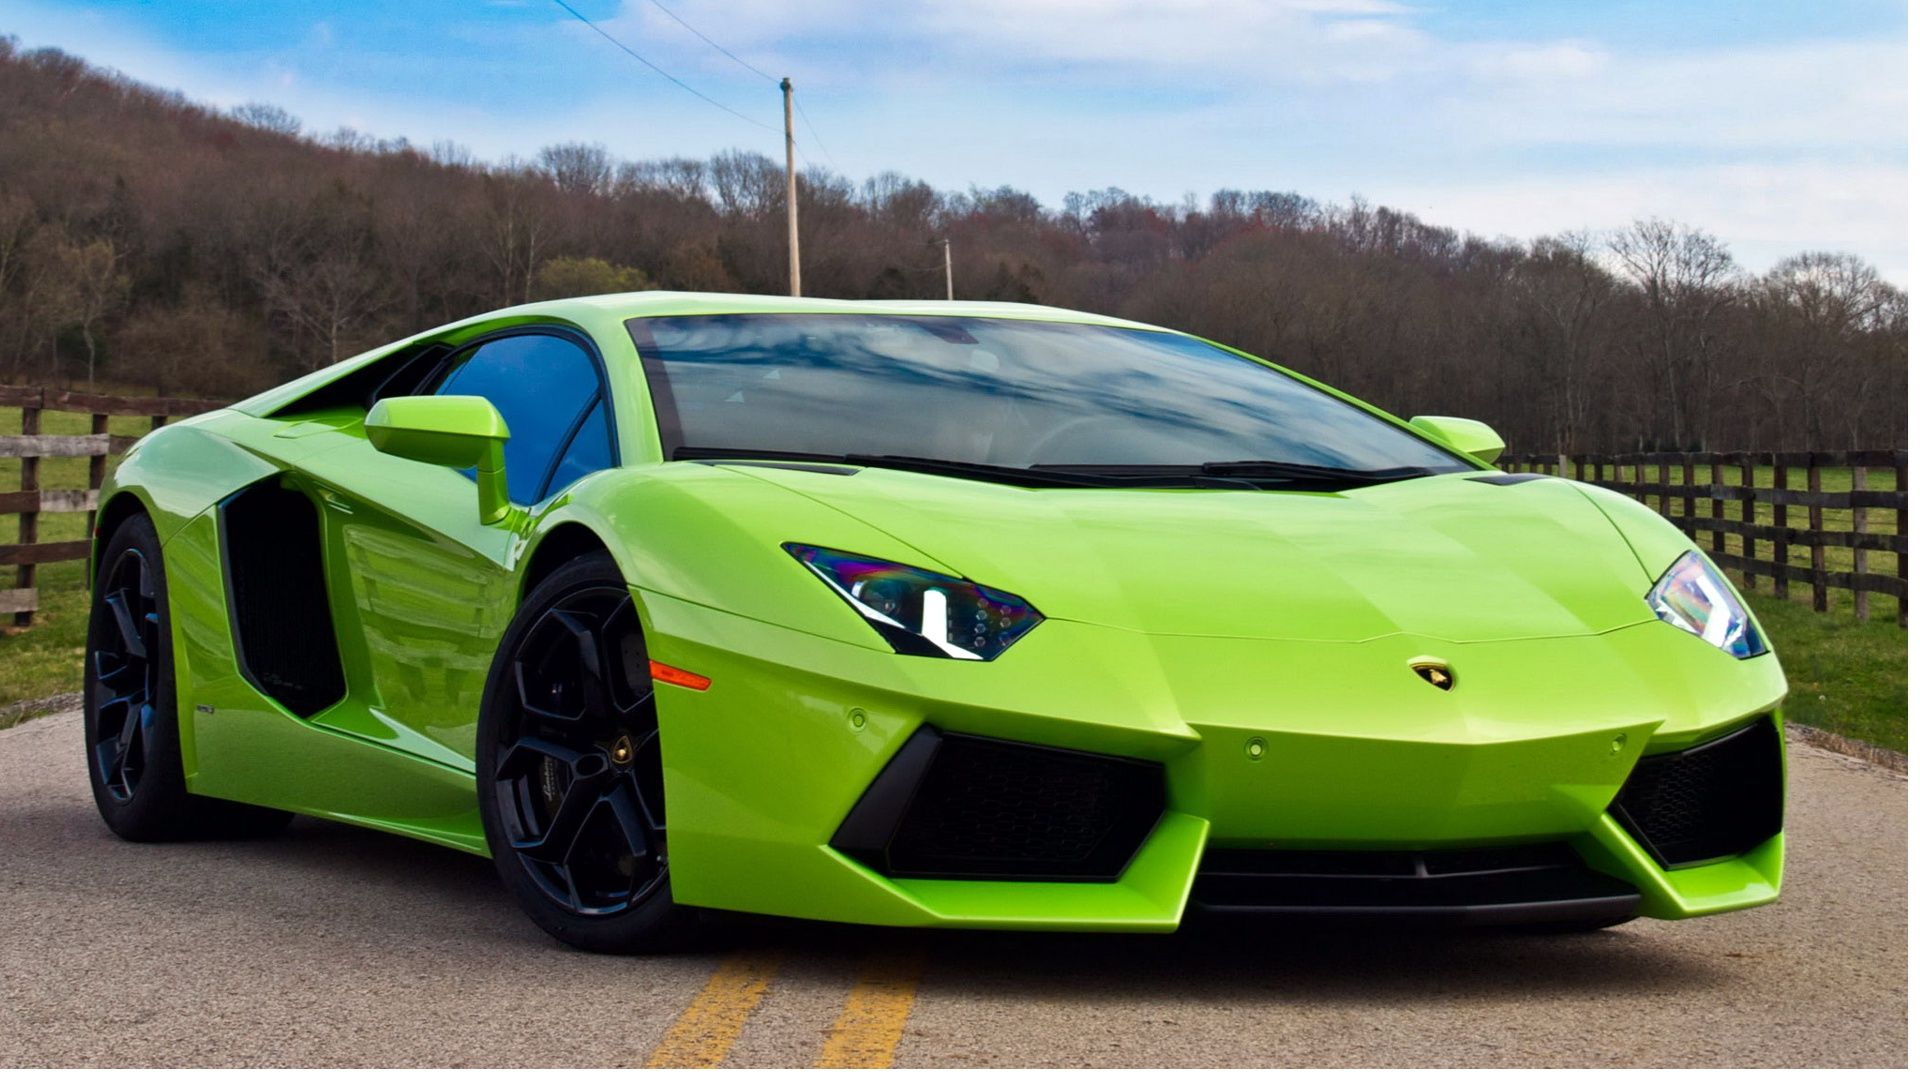 Pin By Brenda Cooper On Beautiful Exotics Lamborghini Aventador Green Lamborghini Lamborghini Aventador Lp700 4